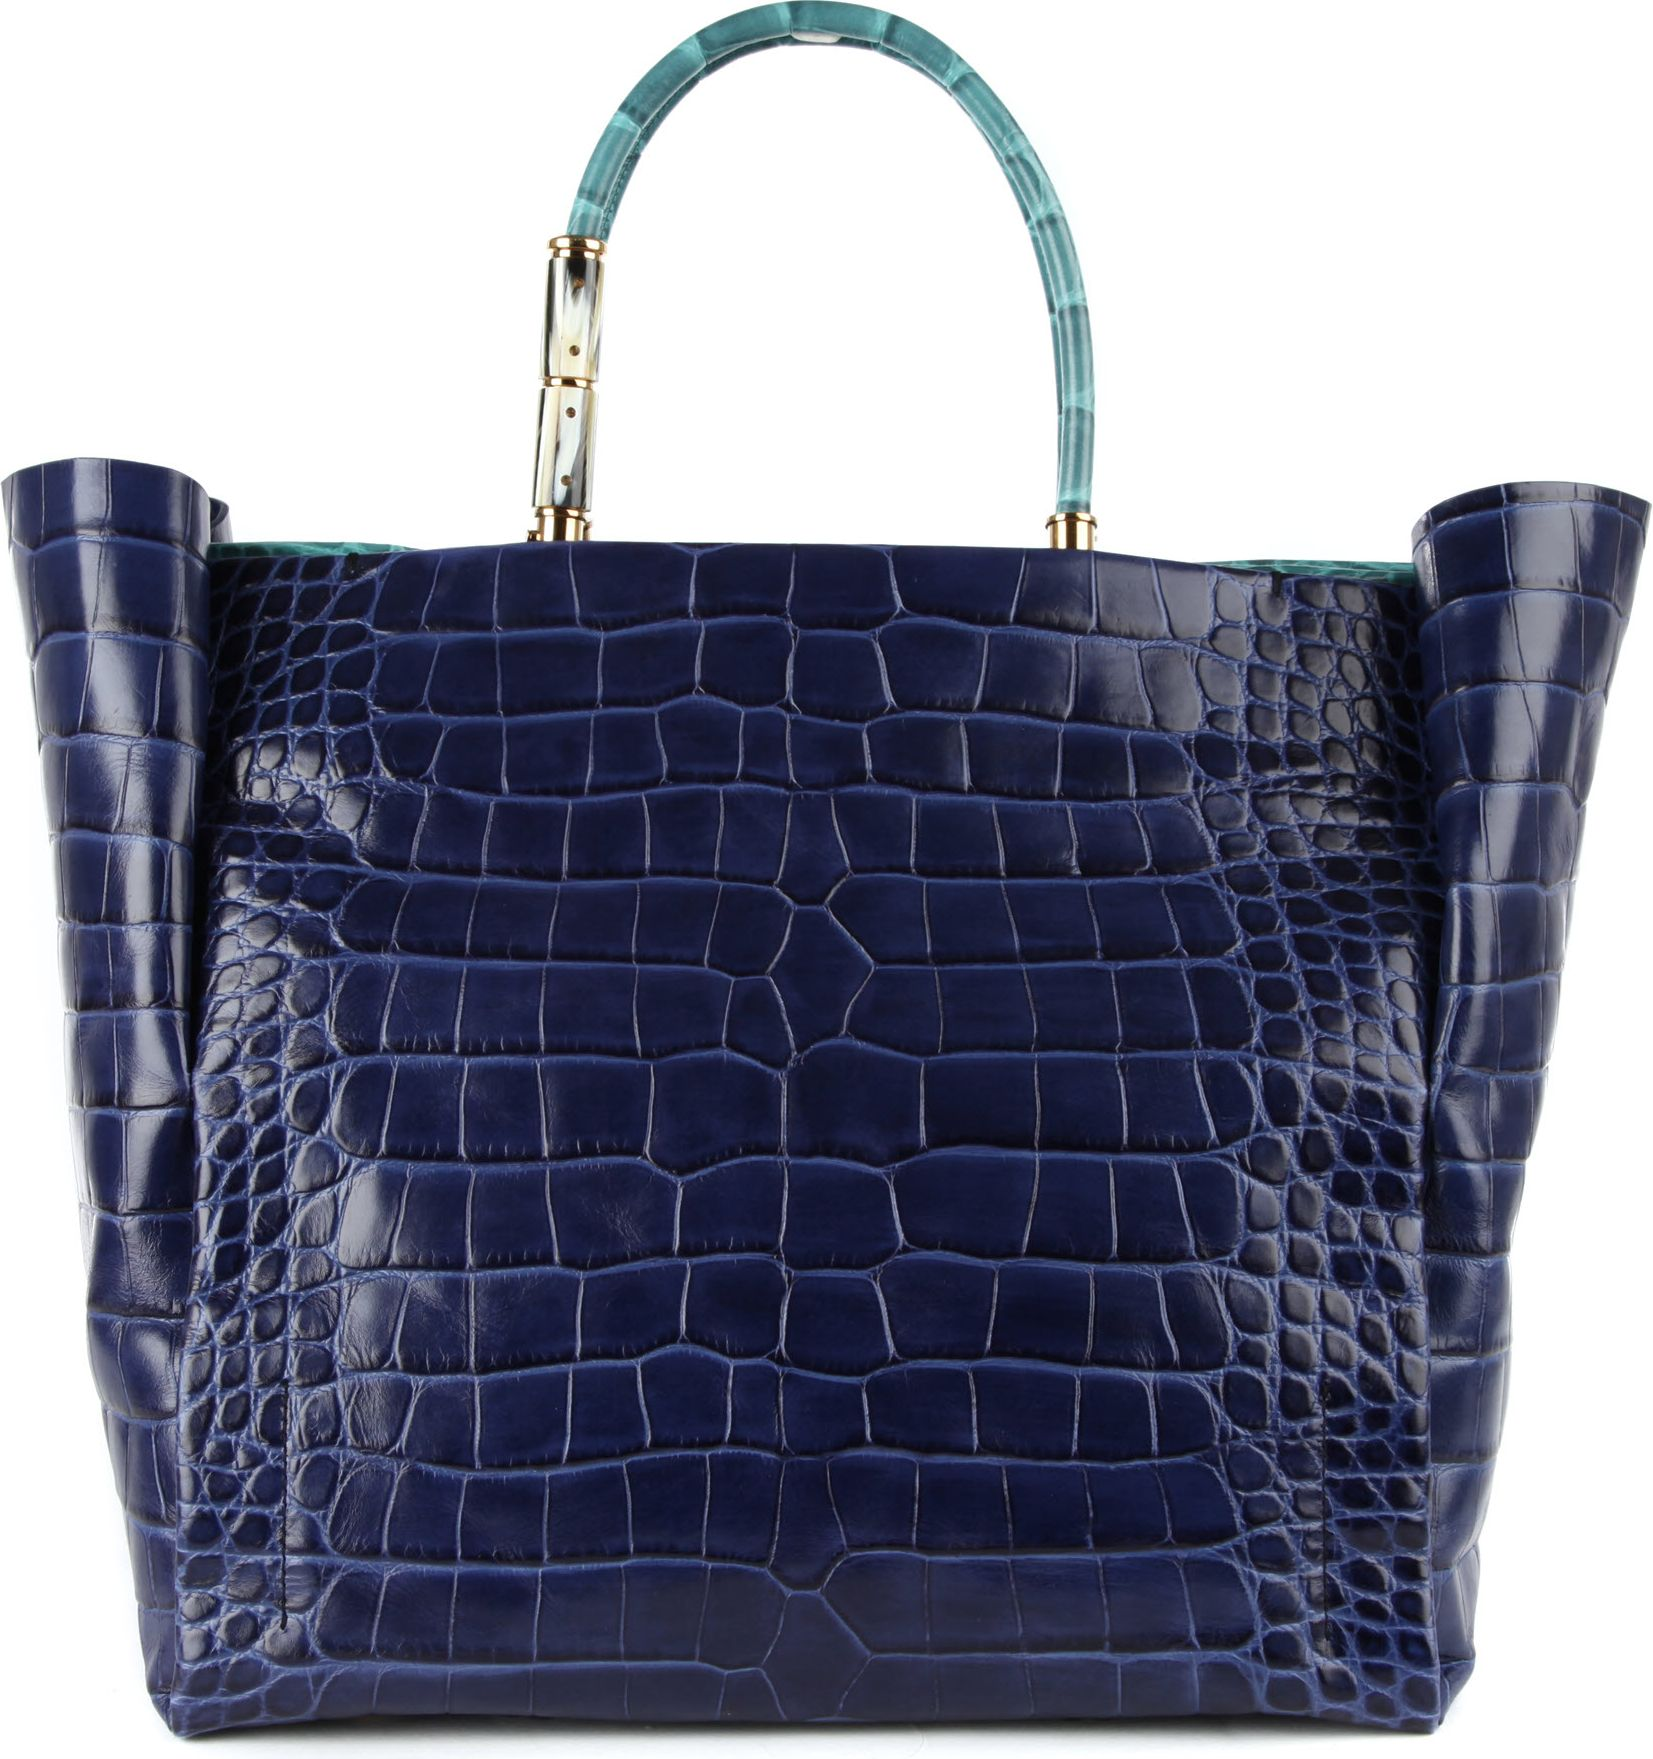 Lanvin Moon River Mockcroc Tote in Blue (navy) | Lyst